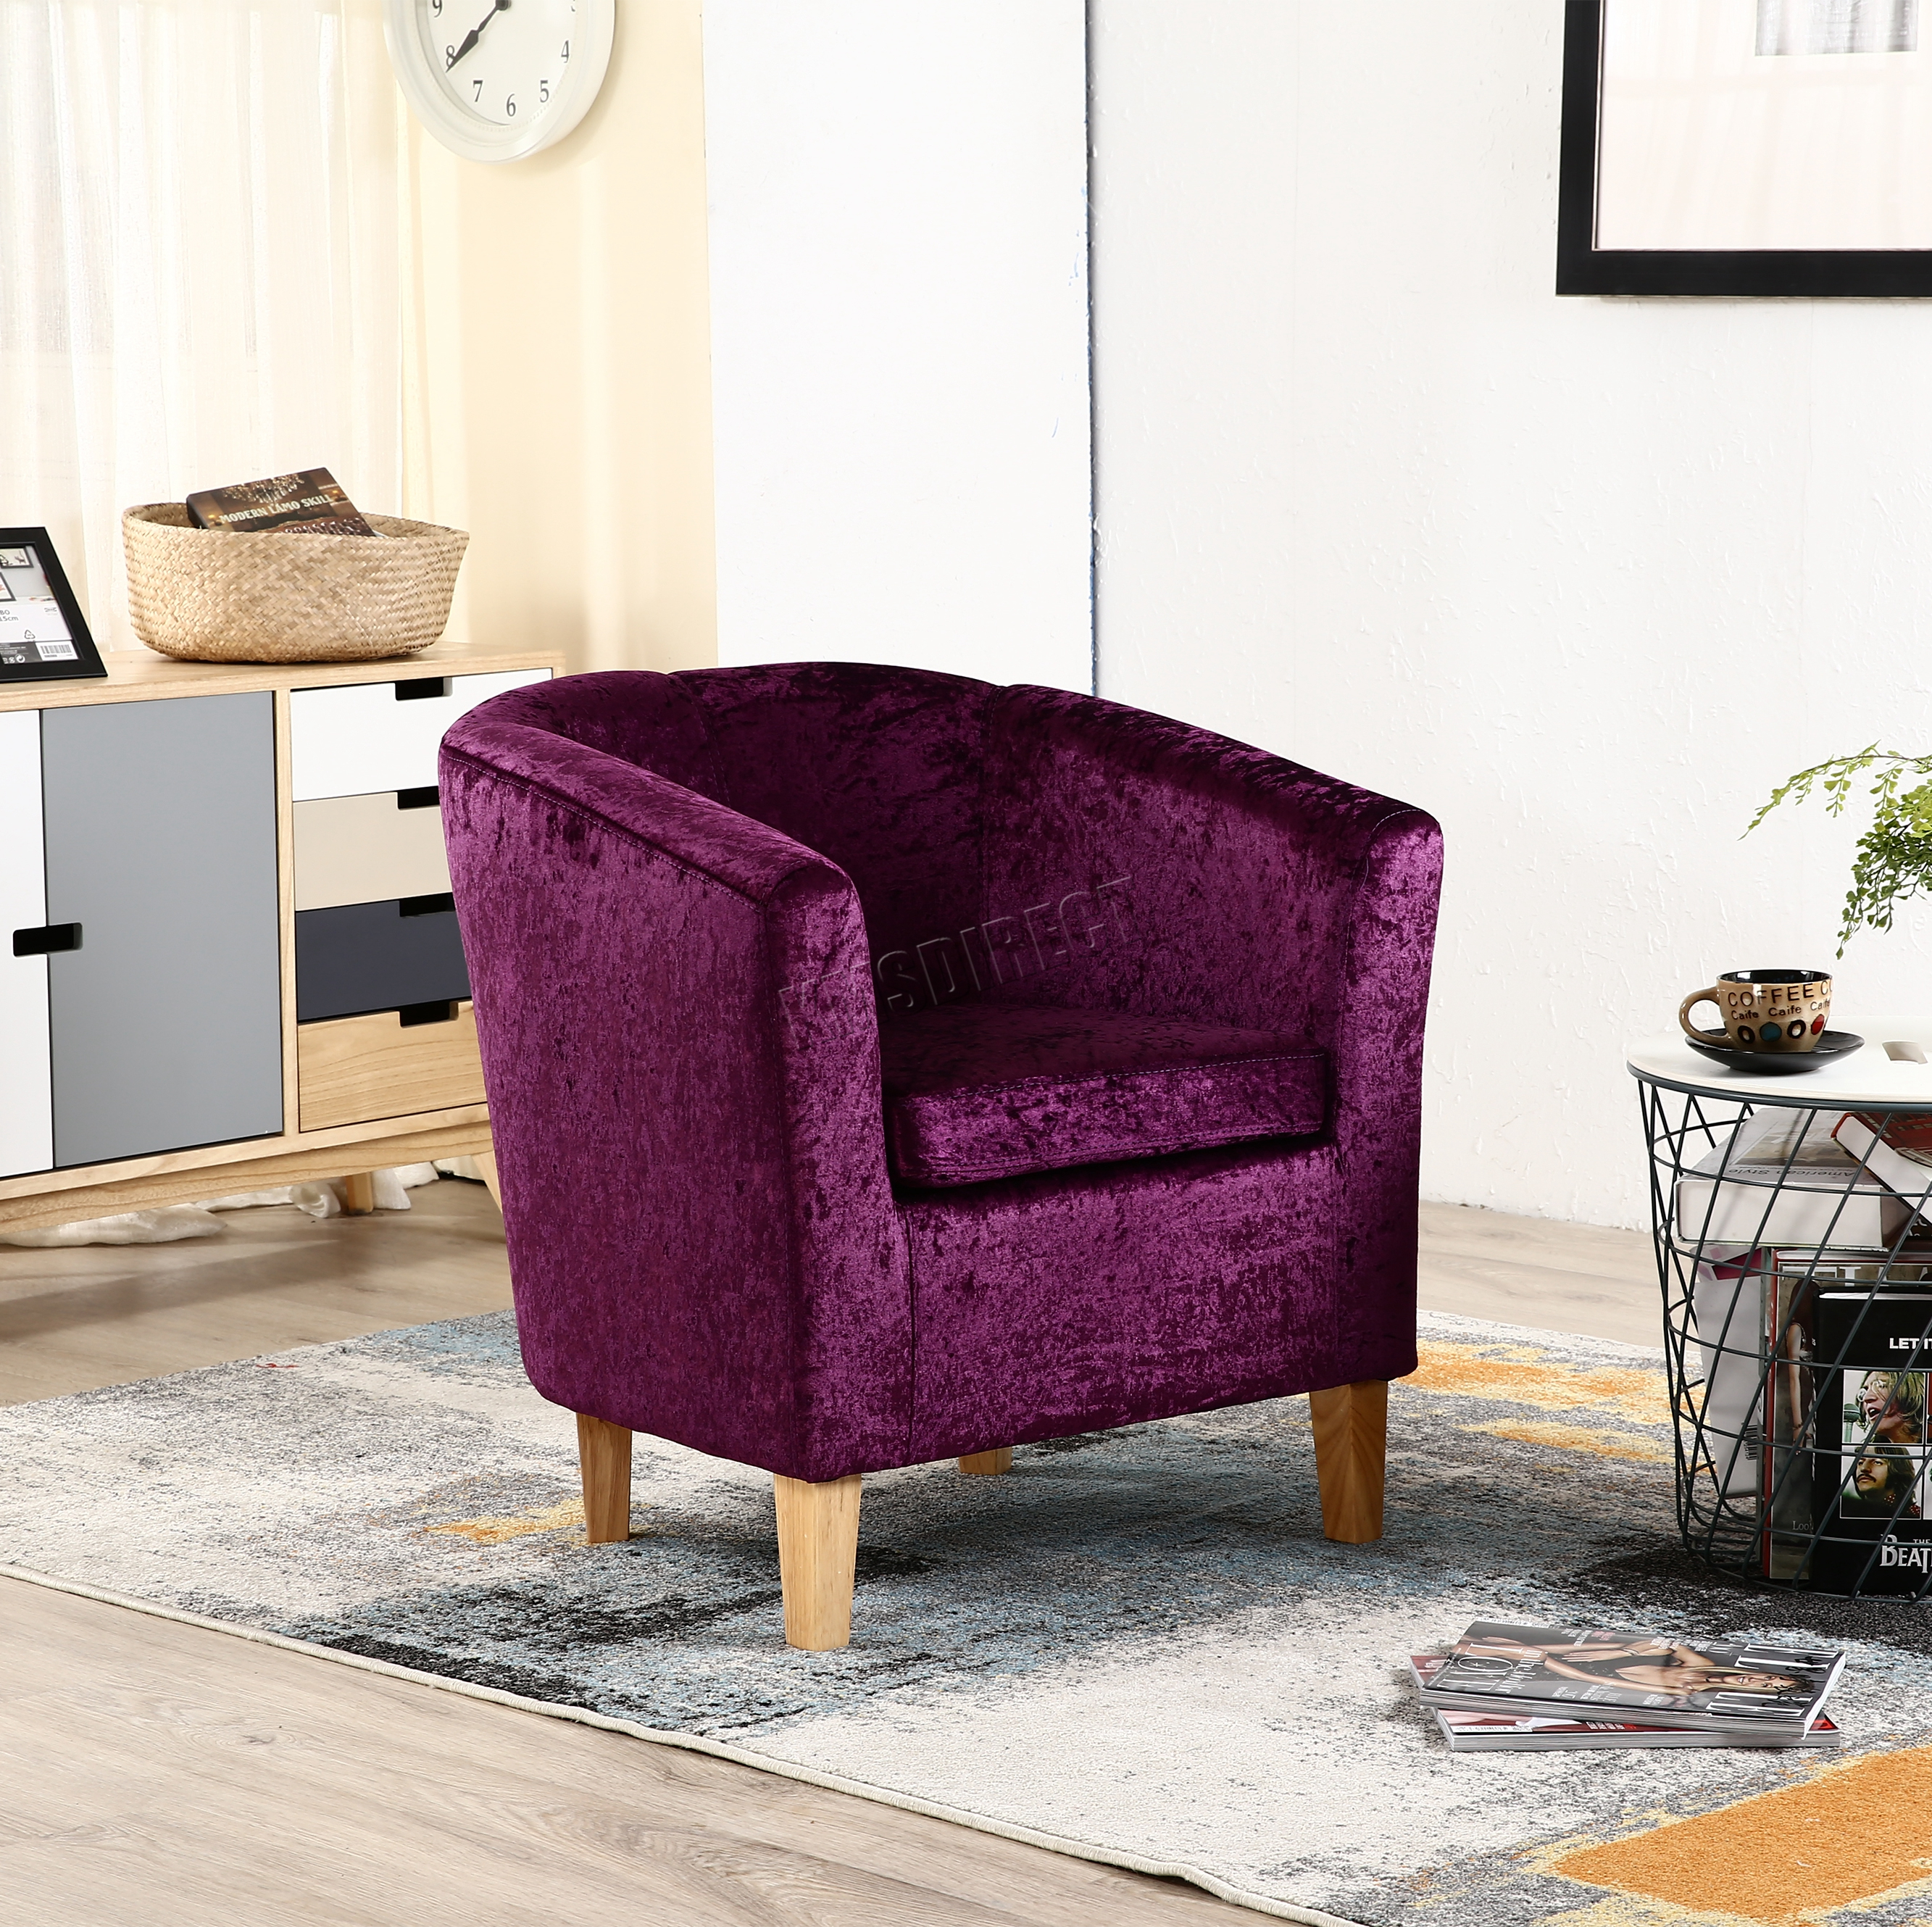 purple crushed velvet bedroom chair modern outdoor fire pit chairs foxhunter crush fabric tub armchair lounge